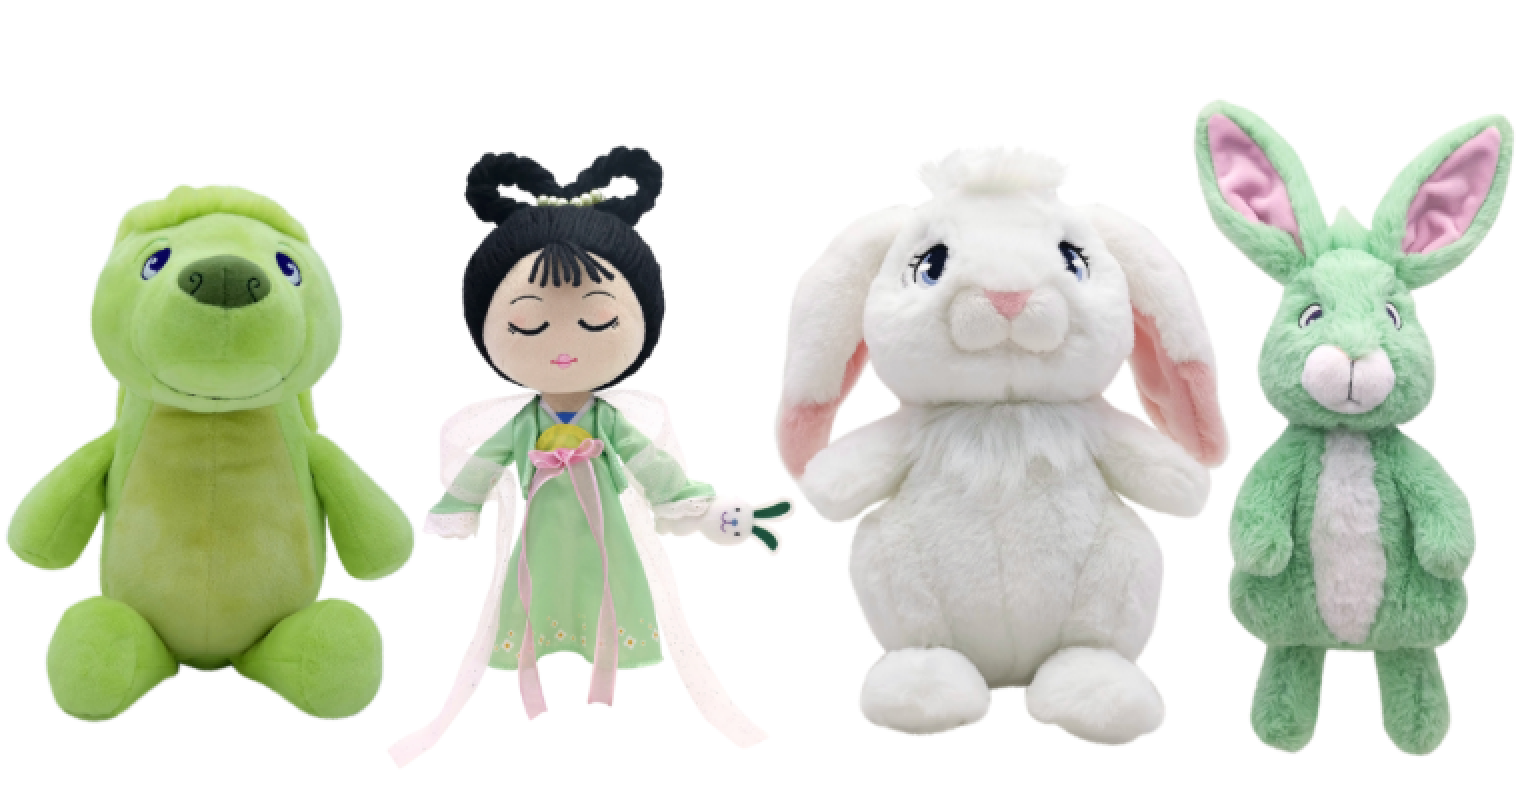 Netflix's Over the Moon is getting a doll and plush line from Mattel 17